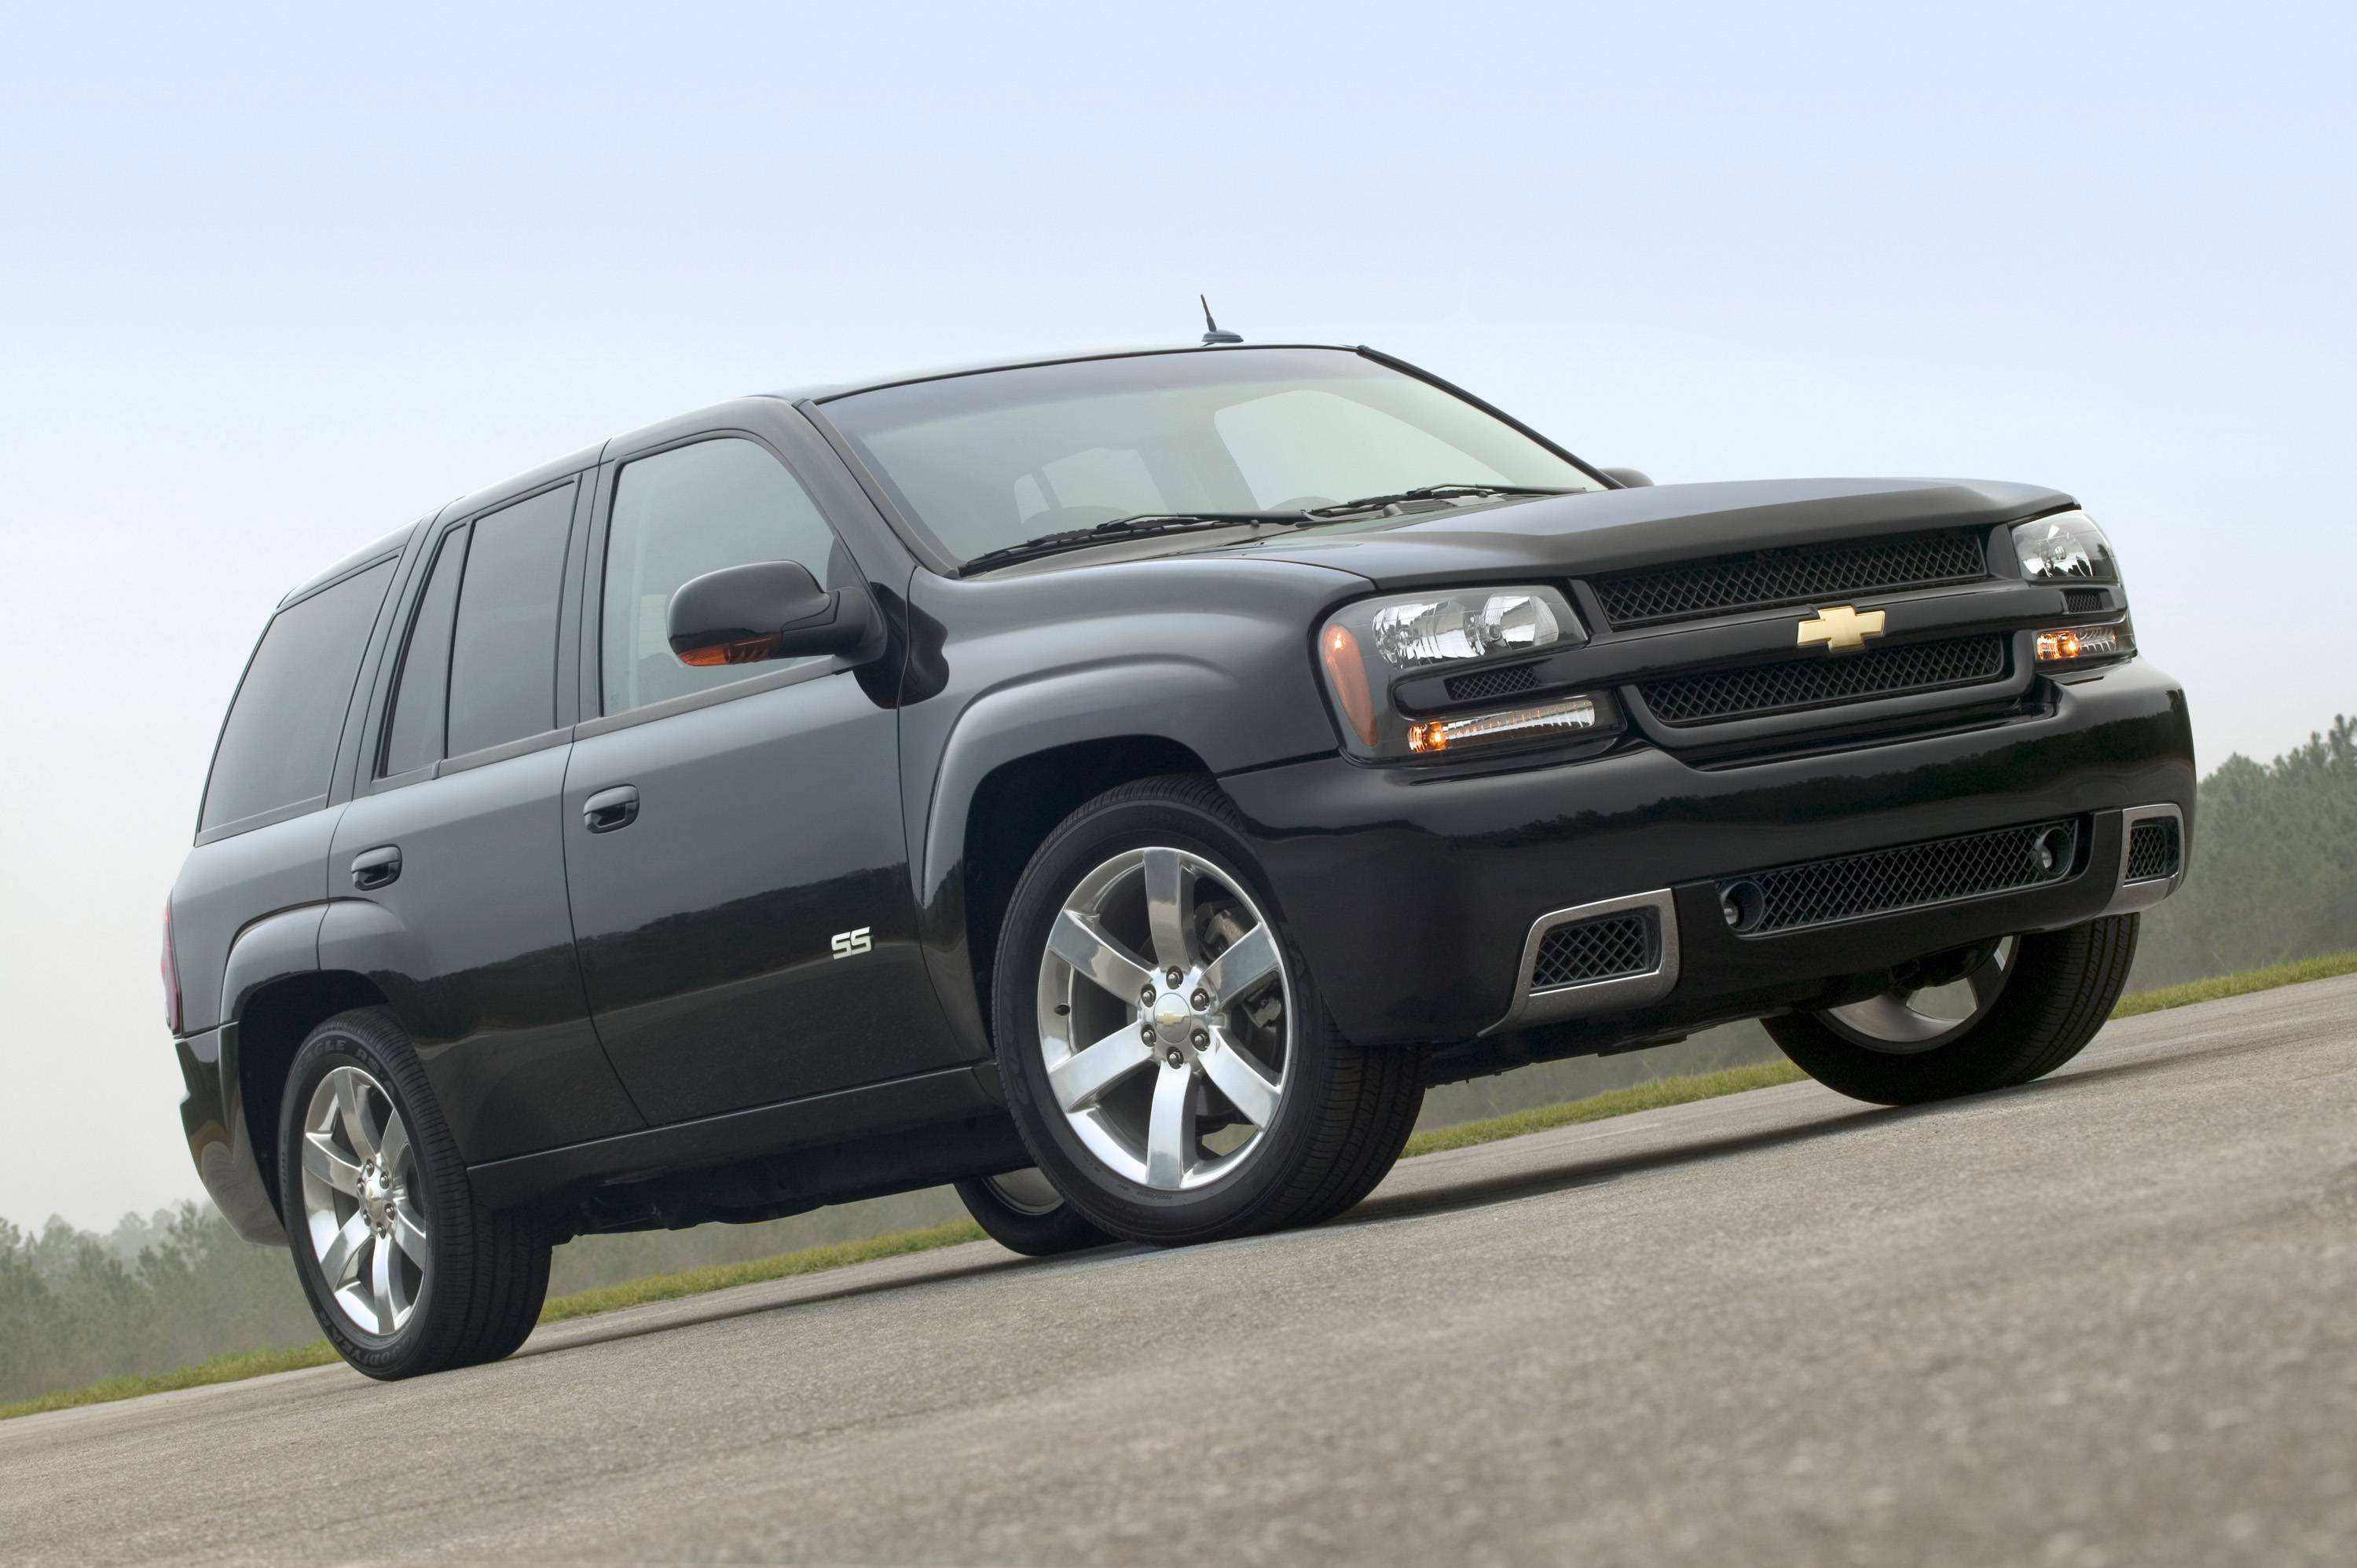 General Motors' troubles with safety recalls have surfaced in another case, this time with the company recalling a group of SUVs, including the 2006-2007 Chevrolet Trailblazer, for a third time to fix power window switches that can catch fire.